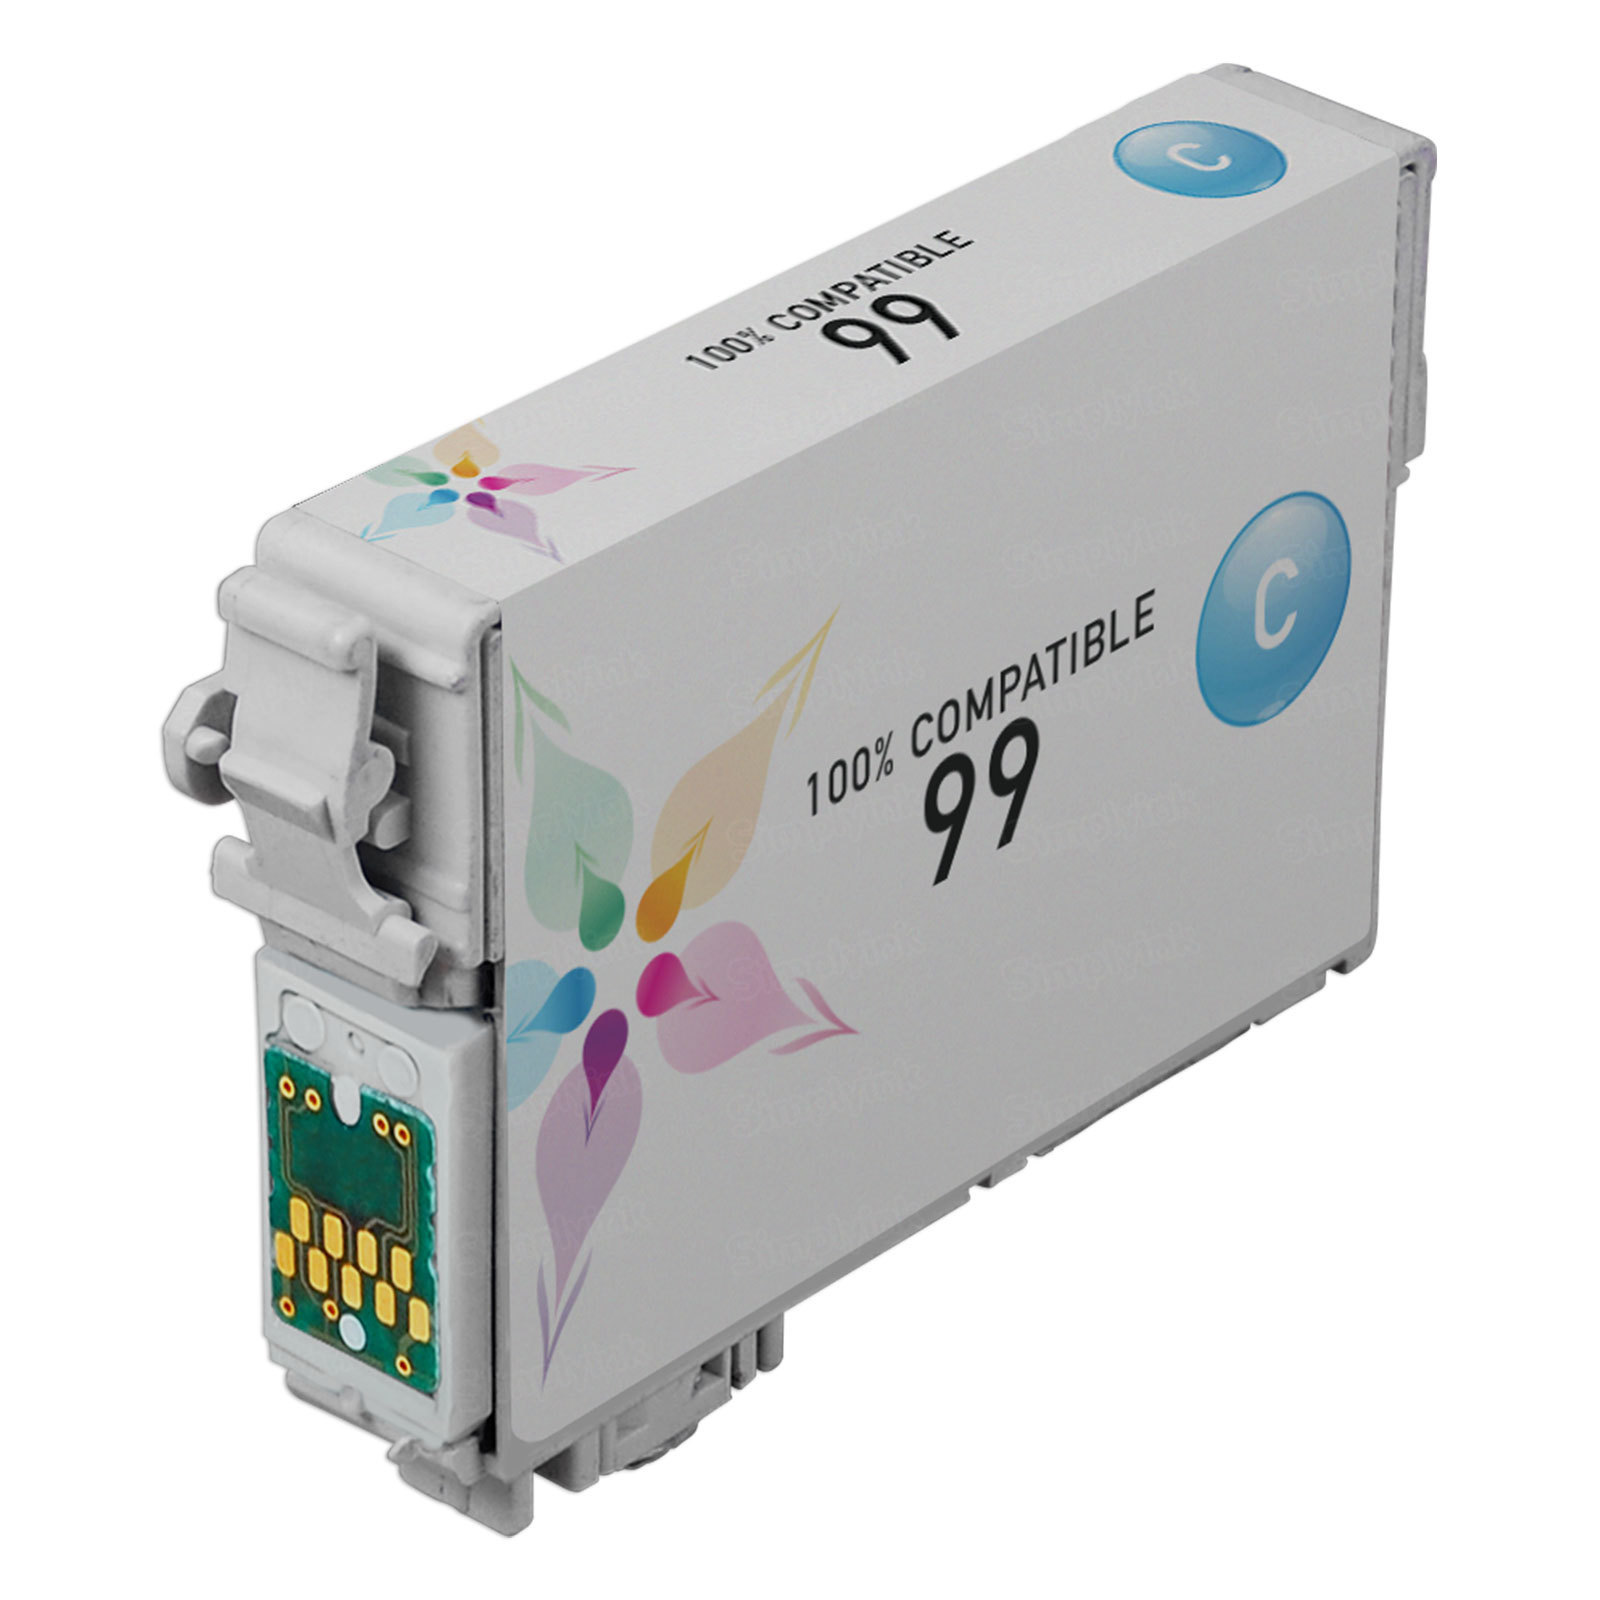 Epson Remanufactured T099220 Cyan Inkjet Cartridge for the Artisan 700, 800